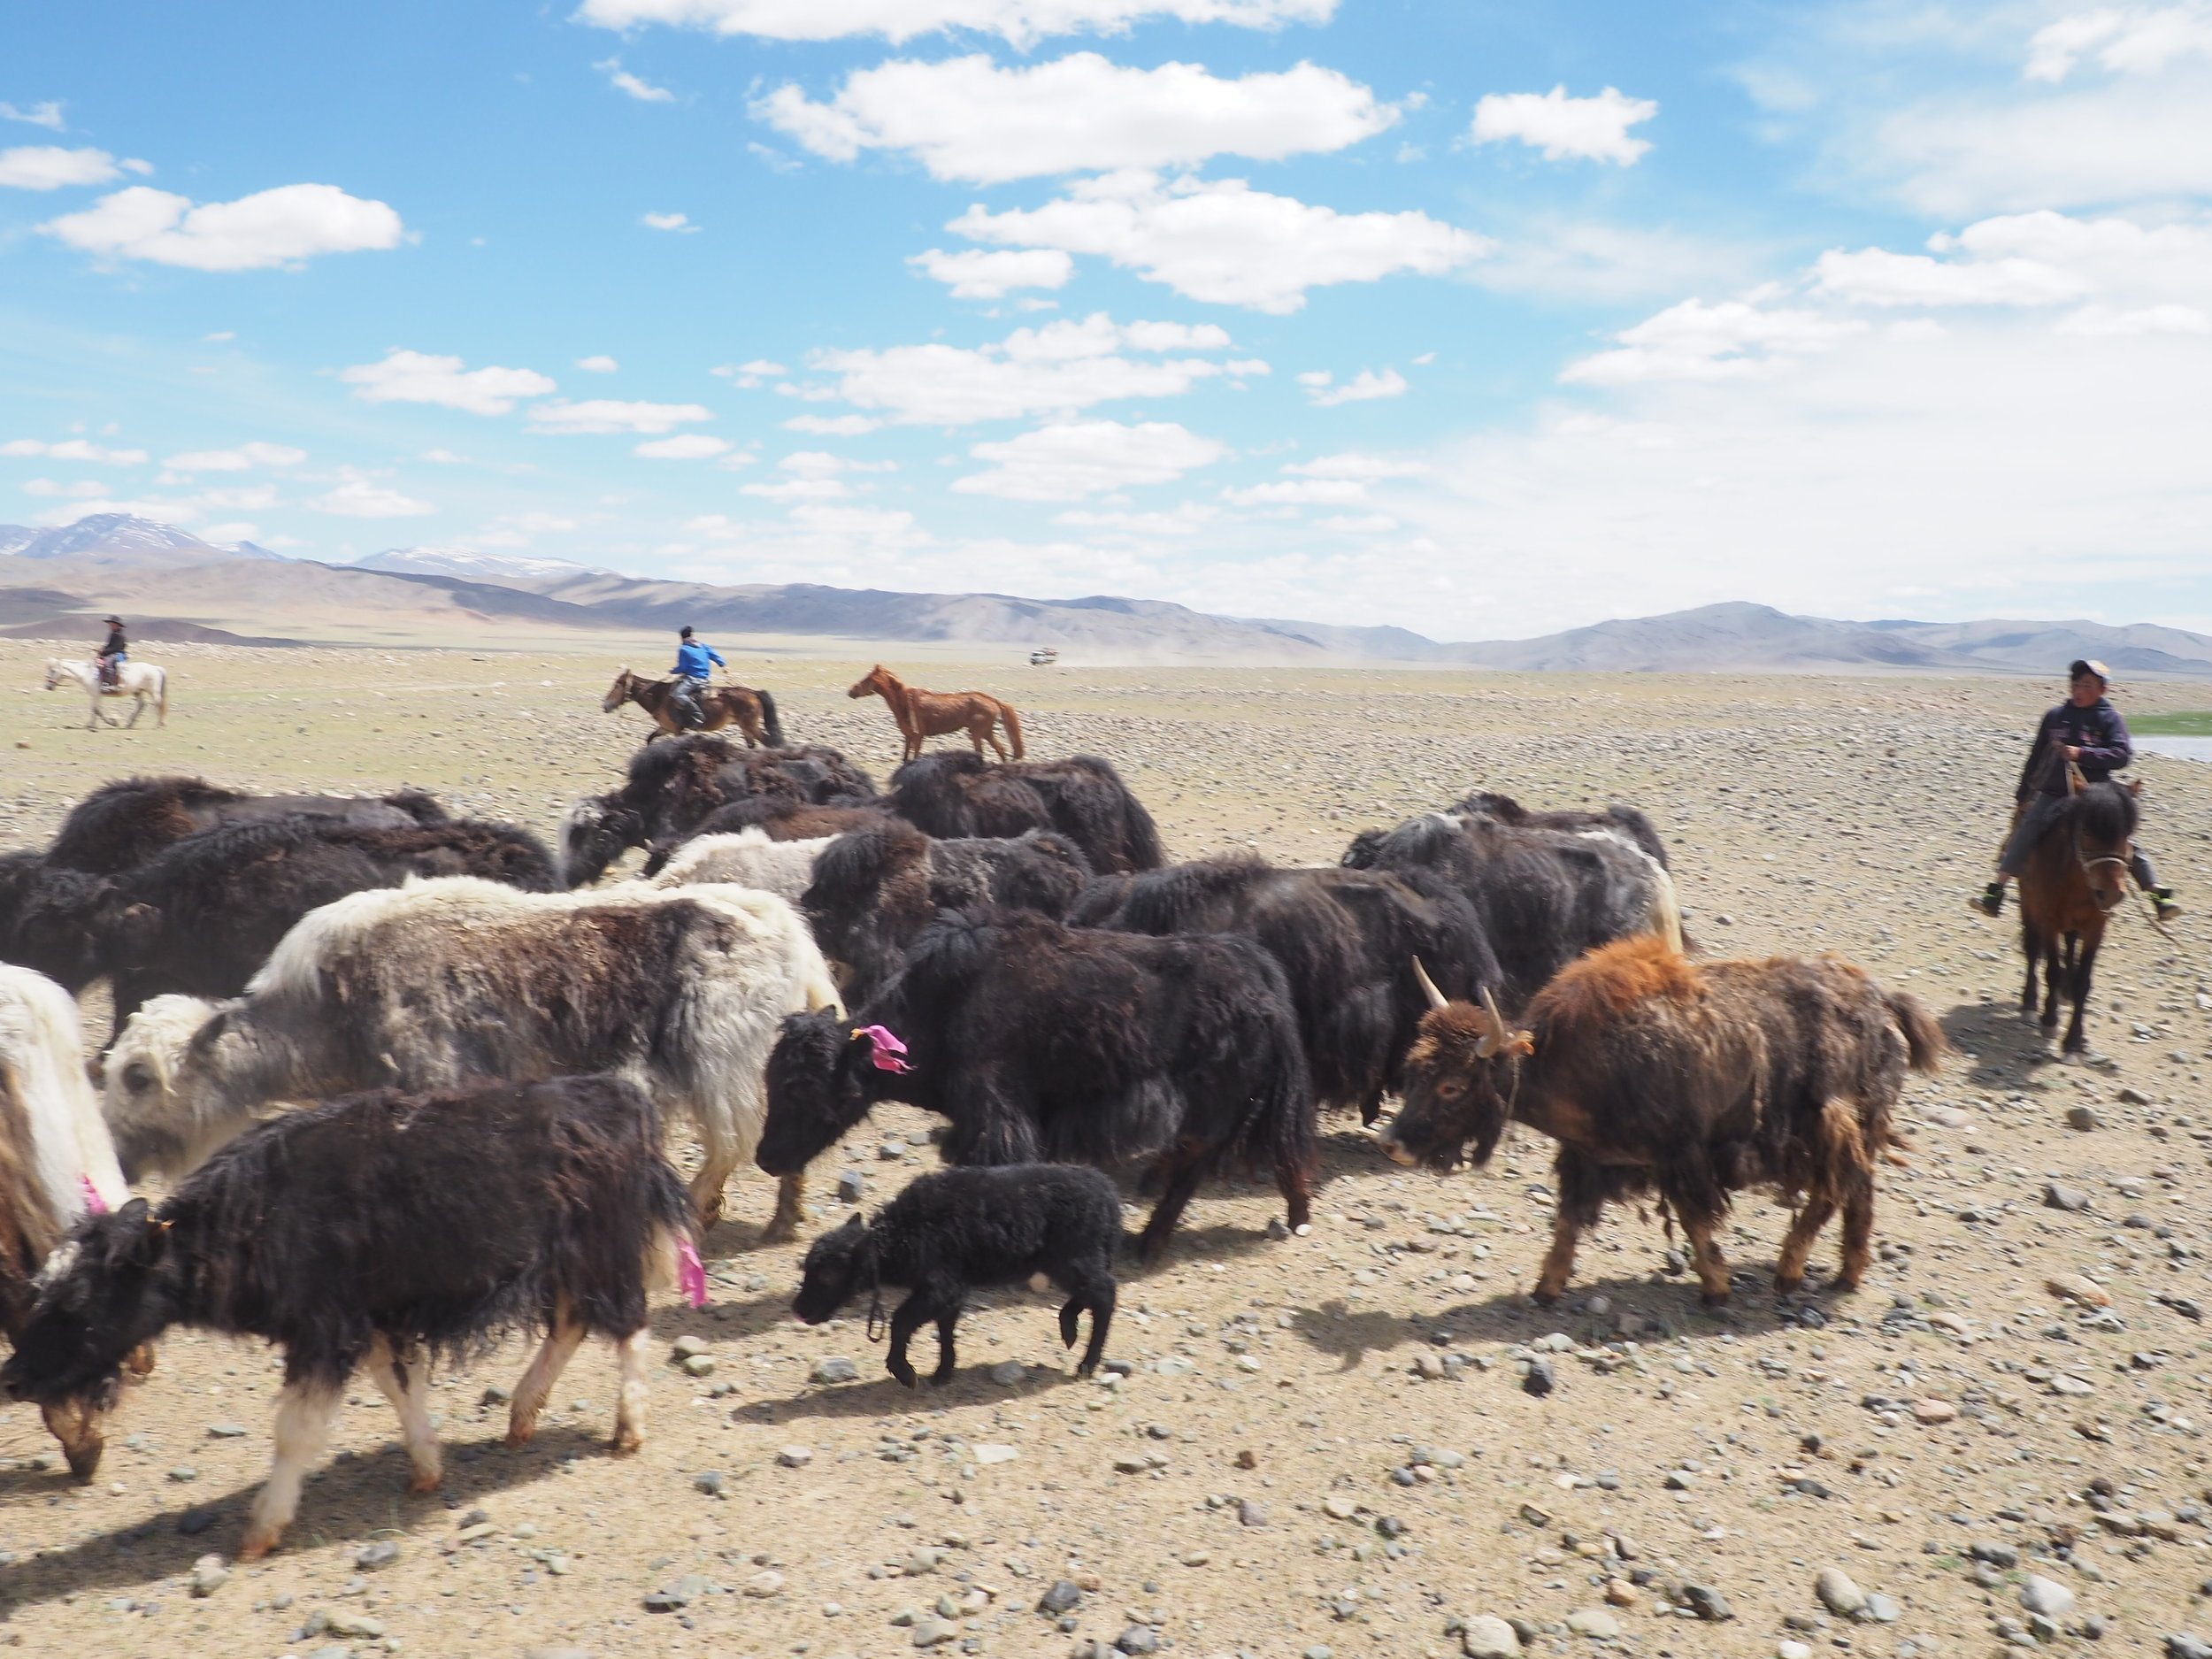 Yaks are very easily distracted